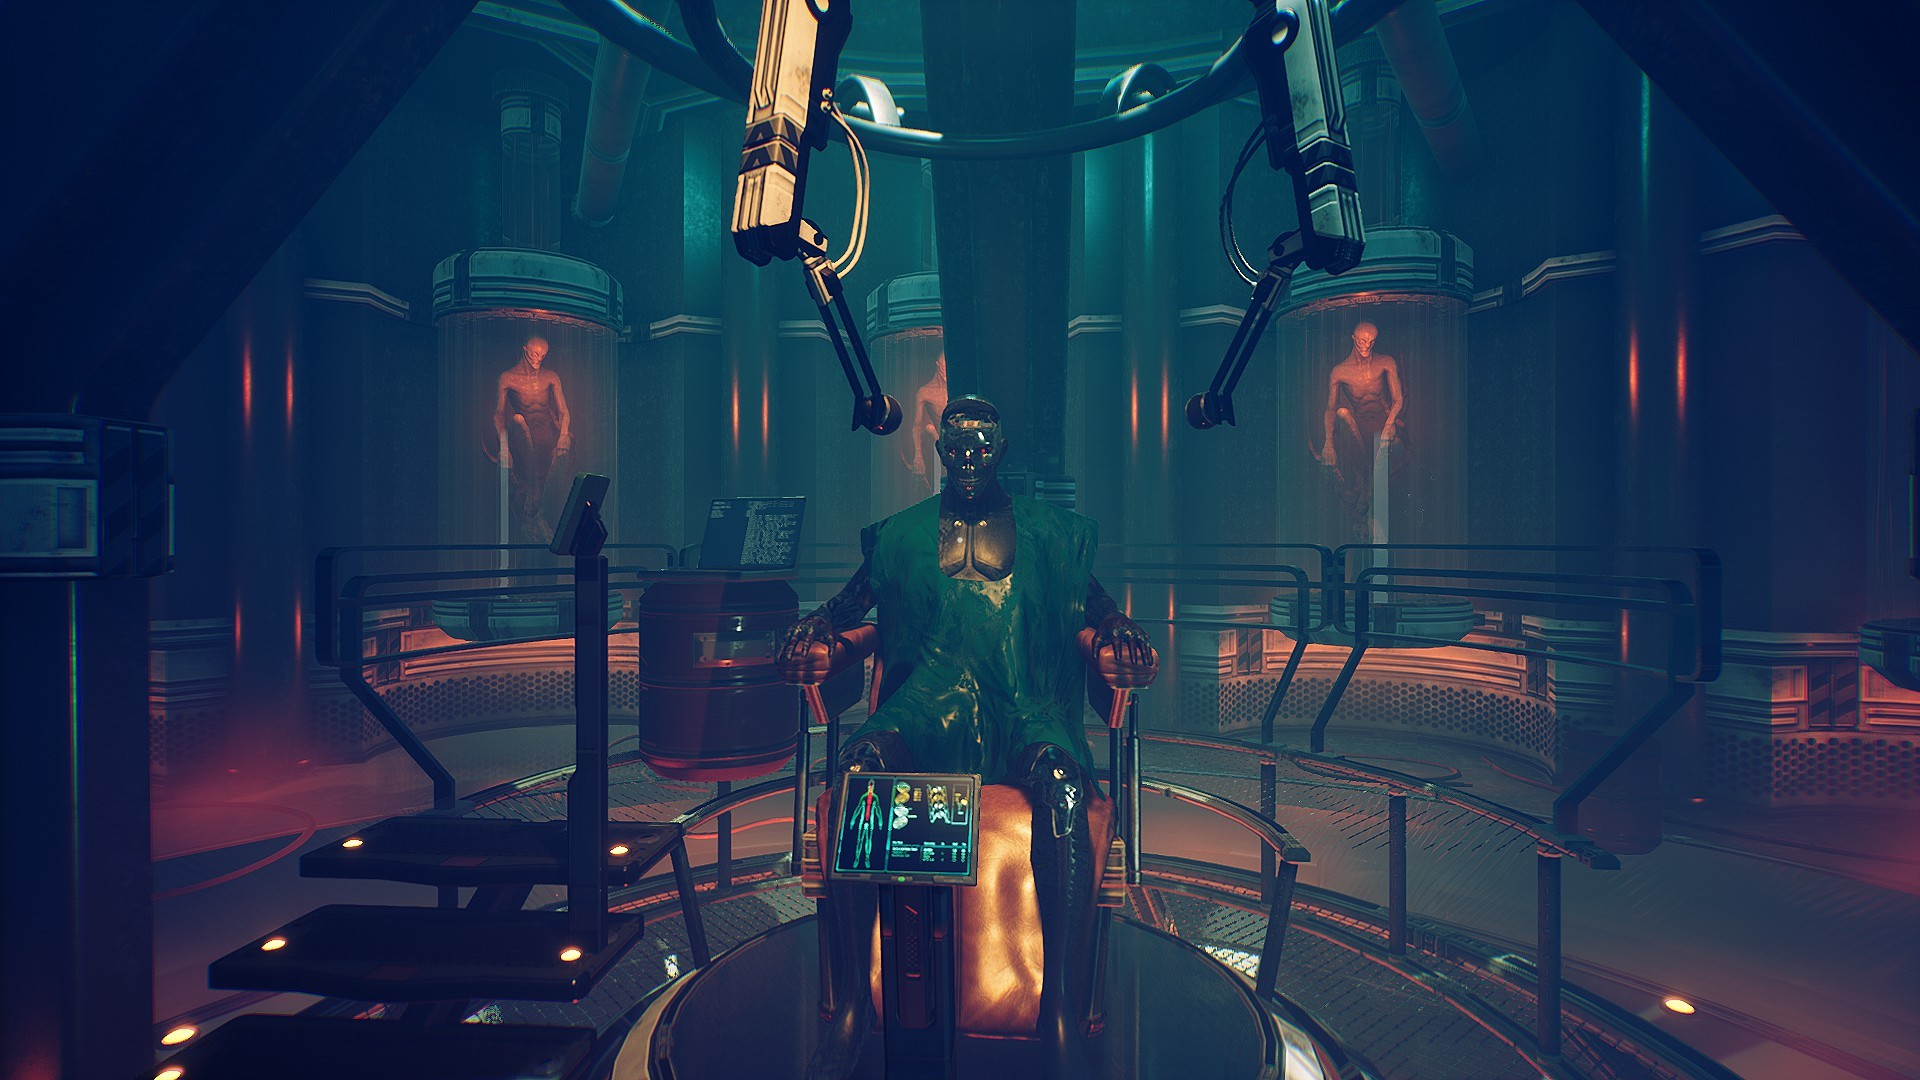 TRANSIENT Is A New Cyberpunk Thriller In A Lovecraftian Universe